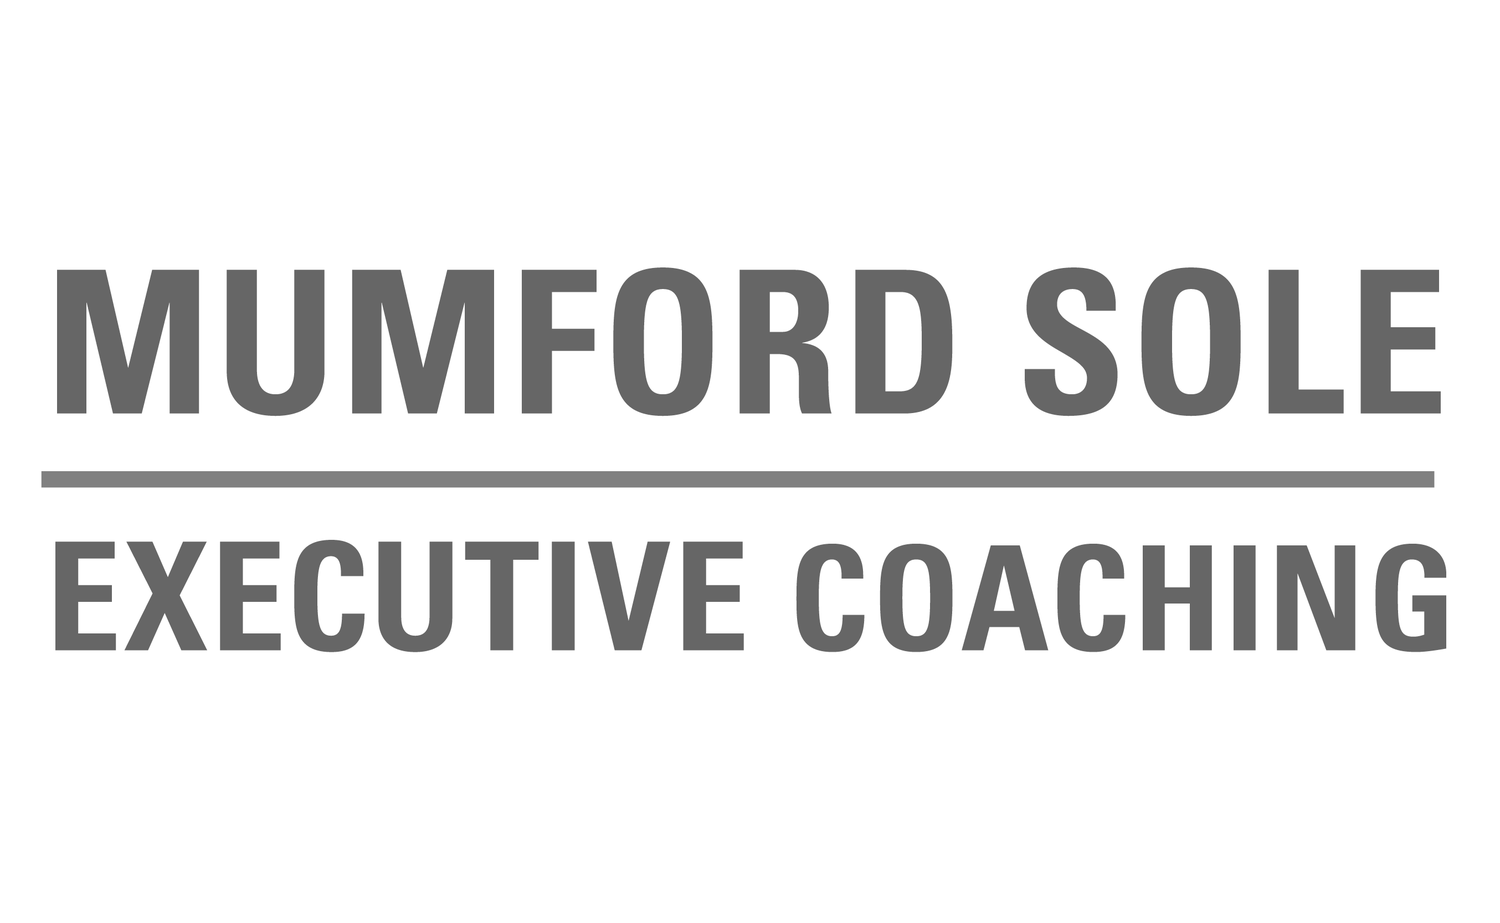 Mumford Sole Executive Coaching